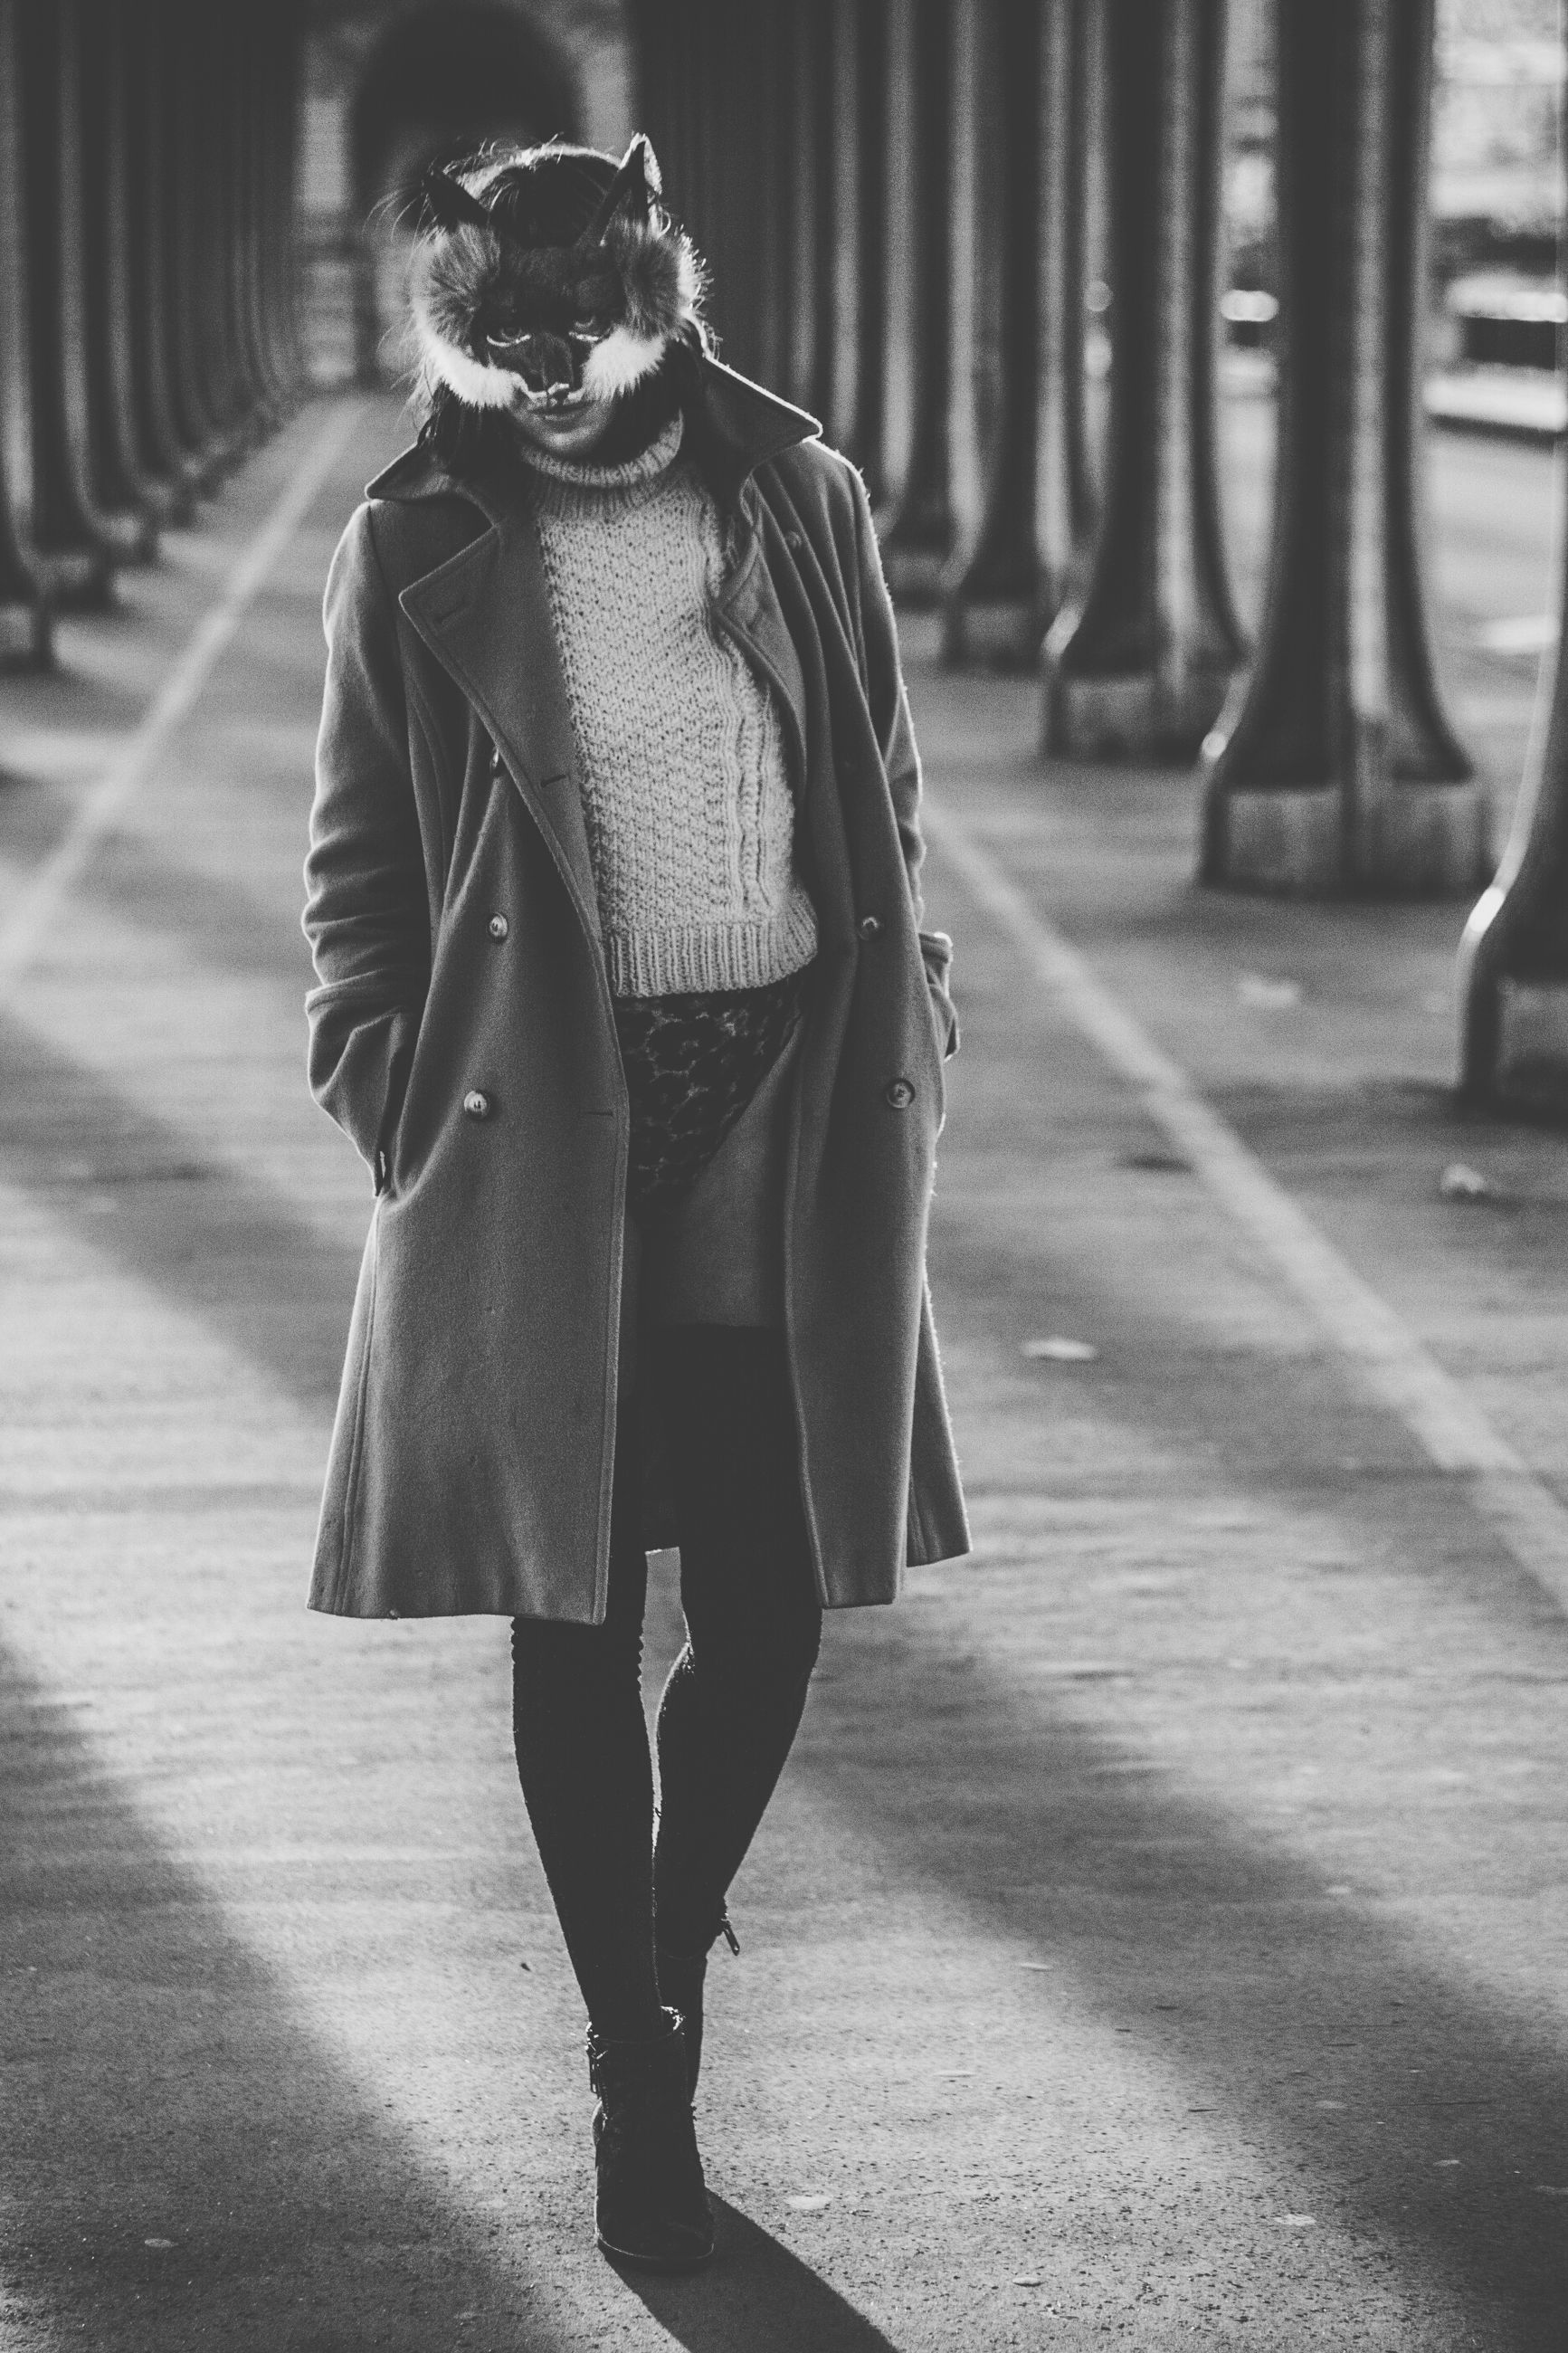 lifestyles, casual clothing, full length, leisure activity, standing, front view, street, focus on foreground, warm clothing, rear view, walking, young adult, jacket, fashion, person, road, sidewalk